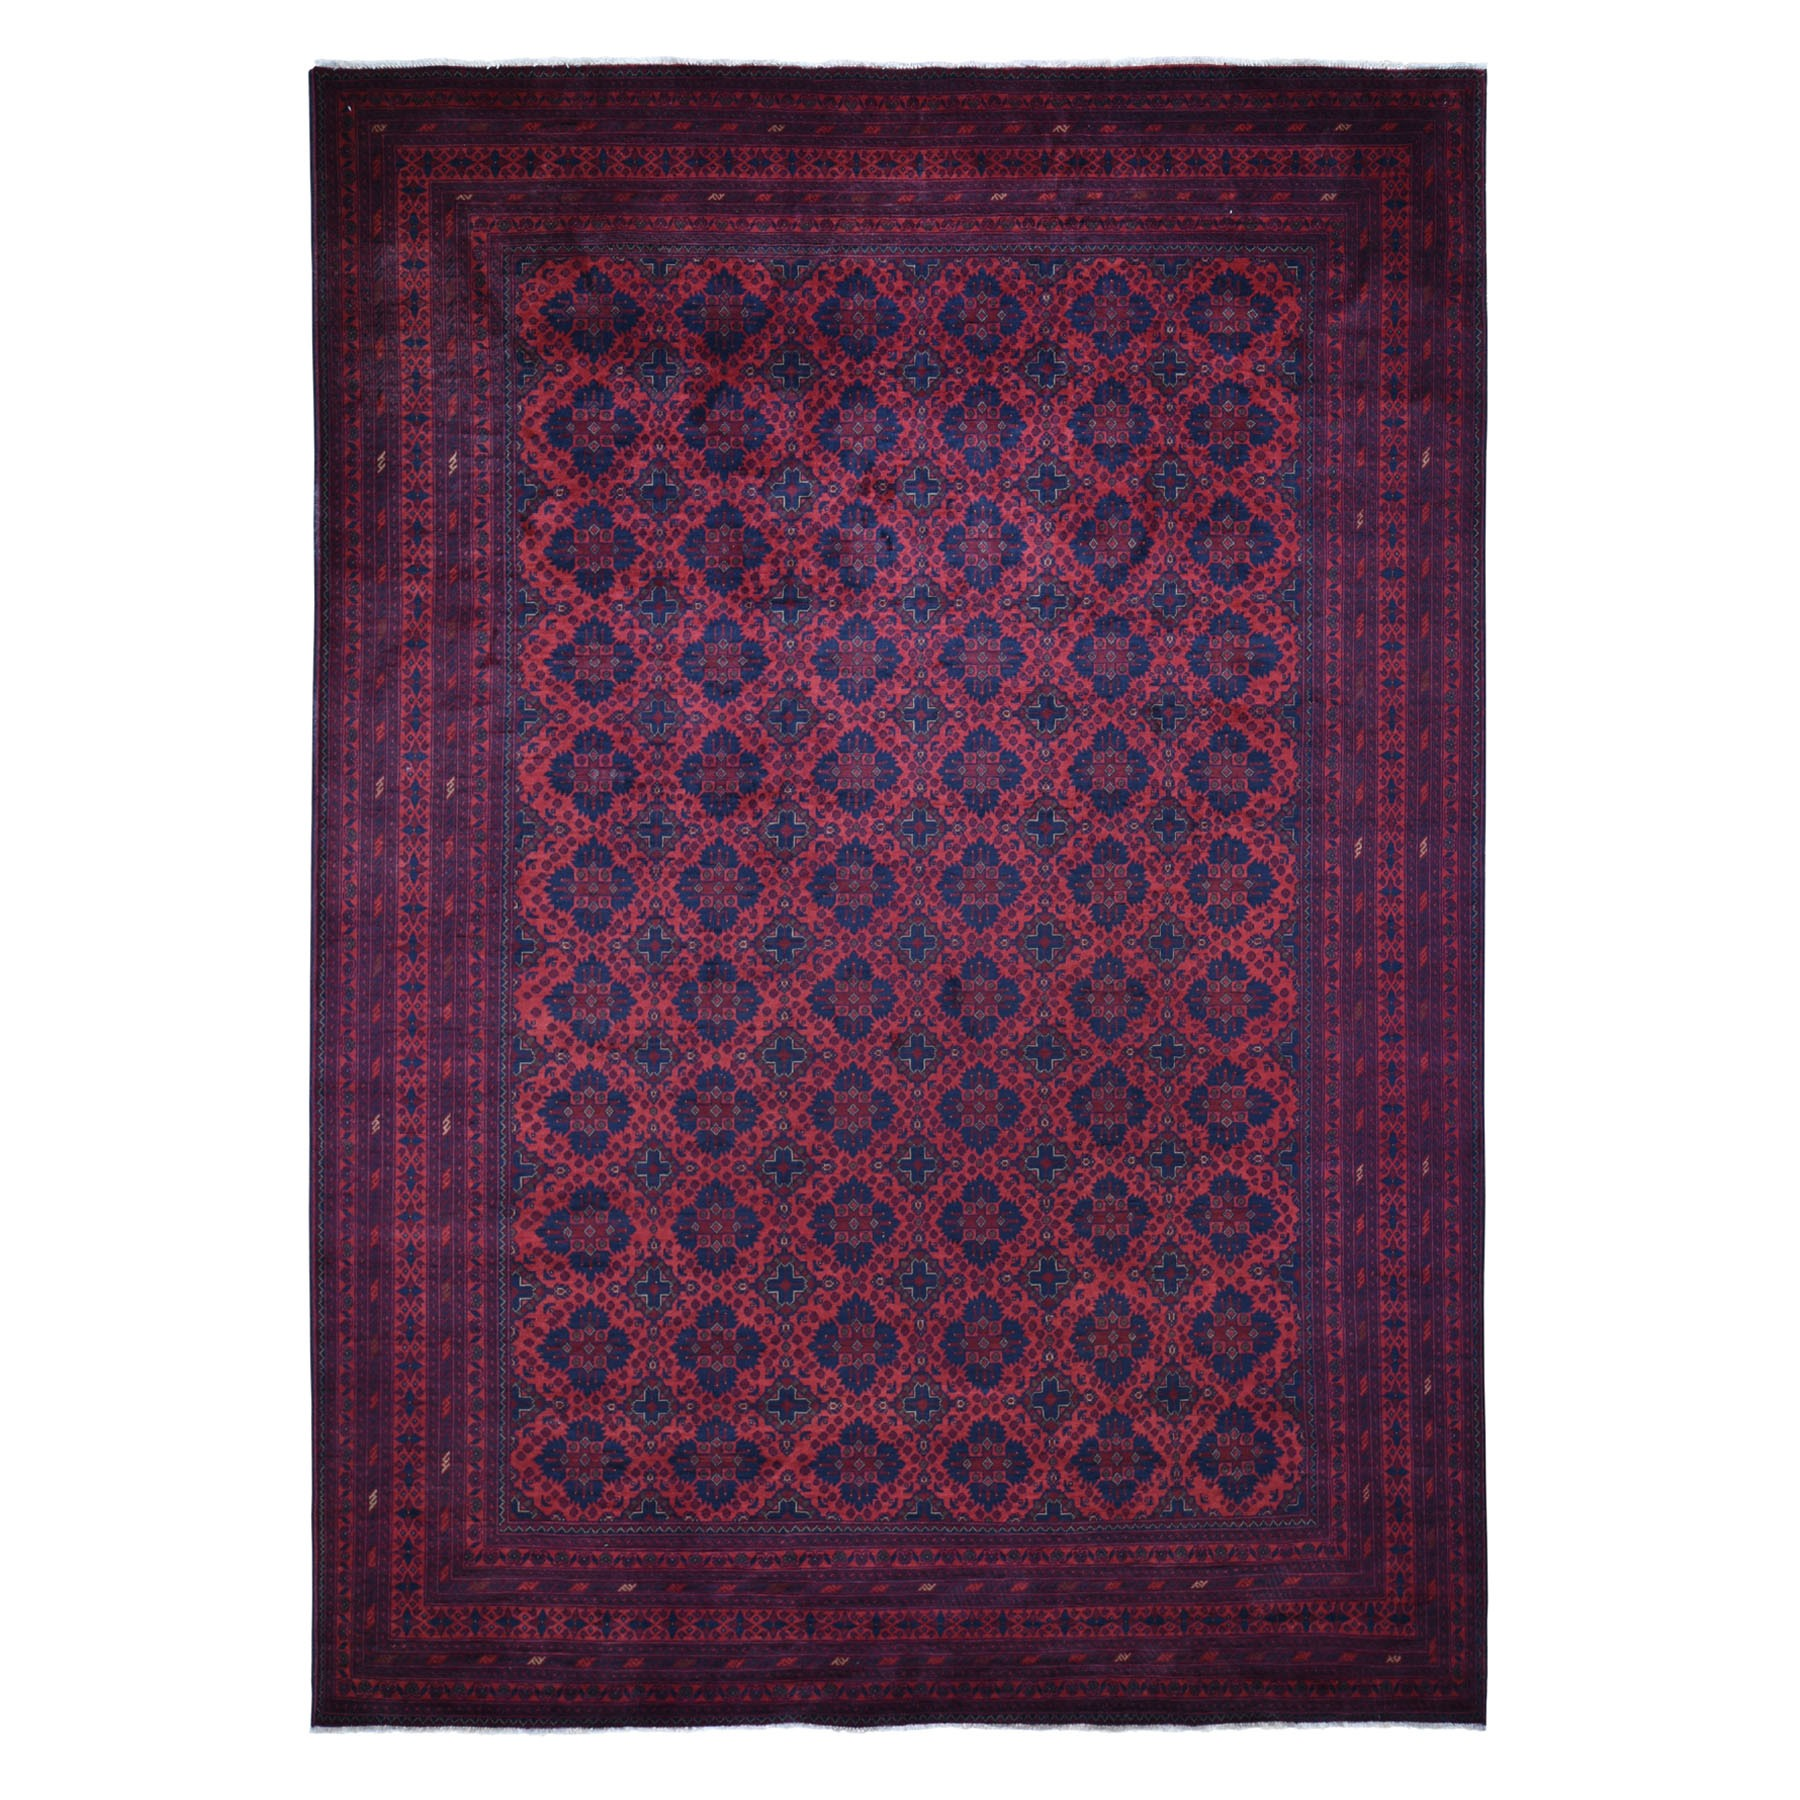 "9'9""x12'9"" Vintage Look Red Geometric Design Afghan Andkhoy Pure Wool Hand Knotted Oriental Rug"